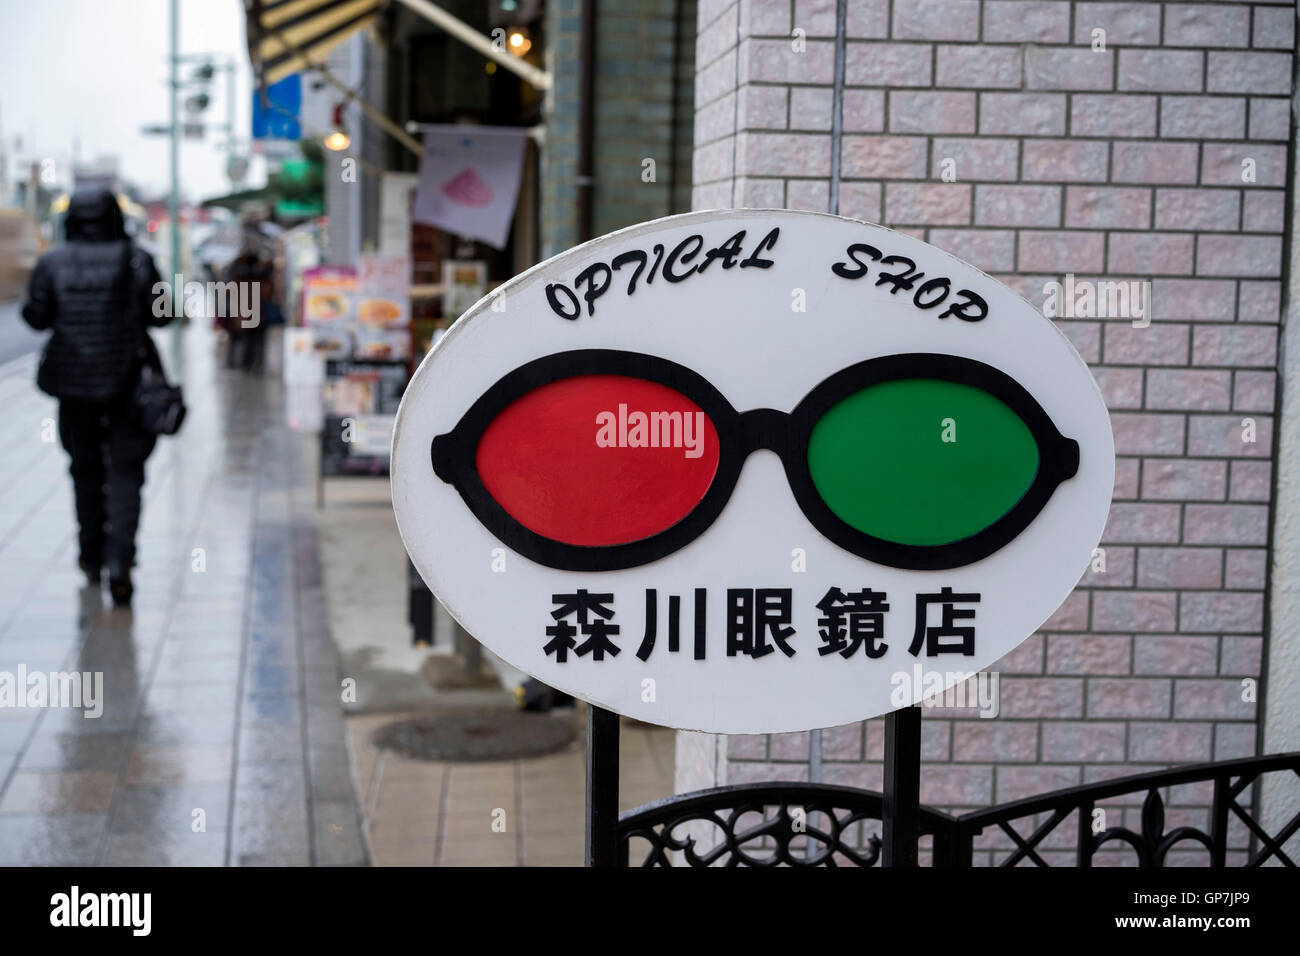 Signage of optical shop displaying on street, kamakura, japan - Stock Image